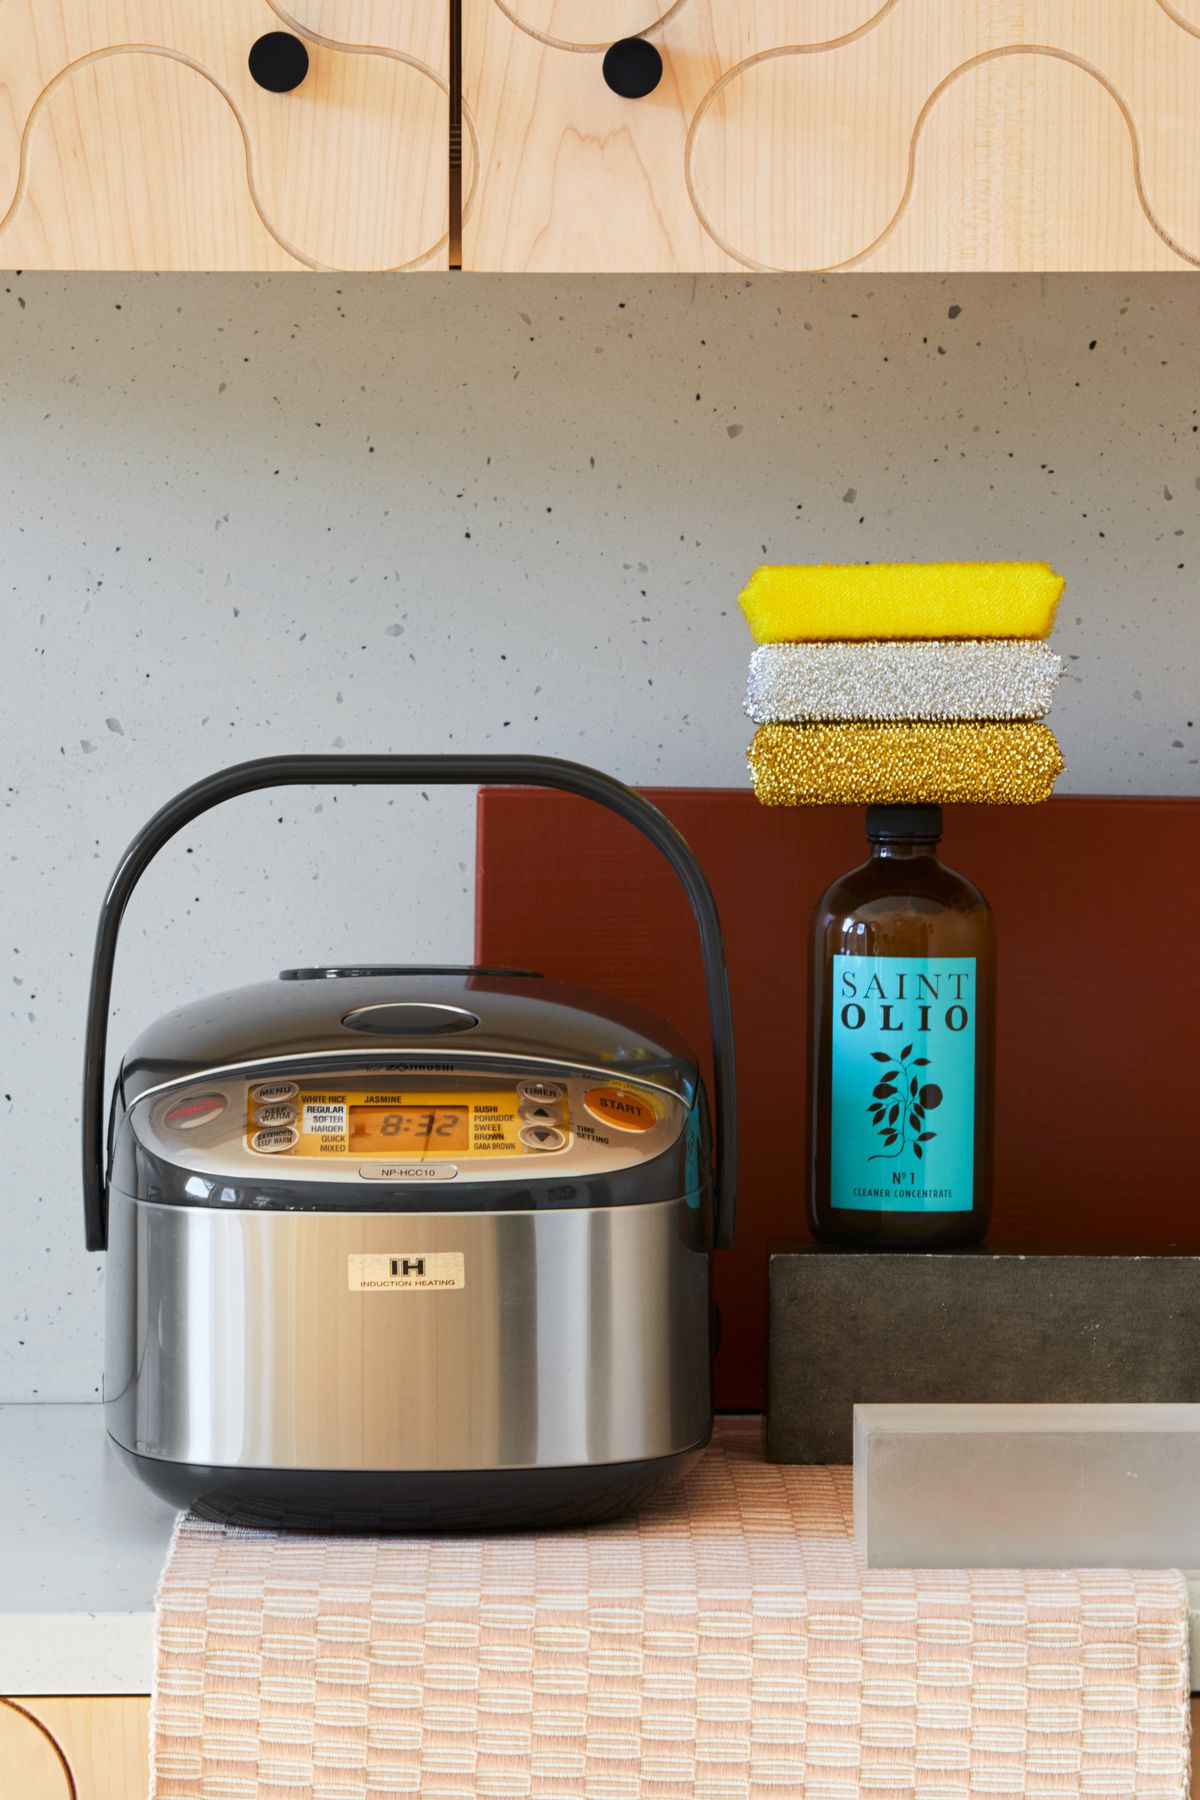 A rice booker, cleaner and a stack of sponges in a kitchen.